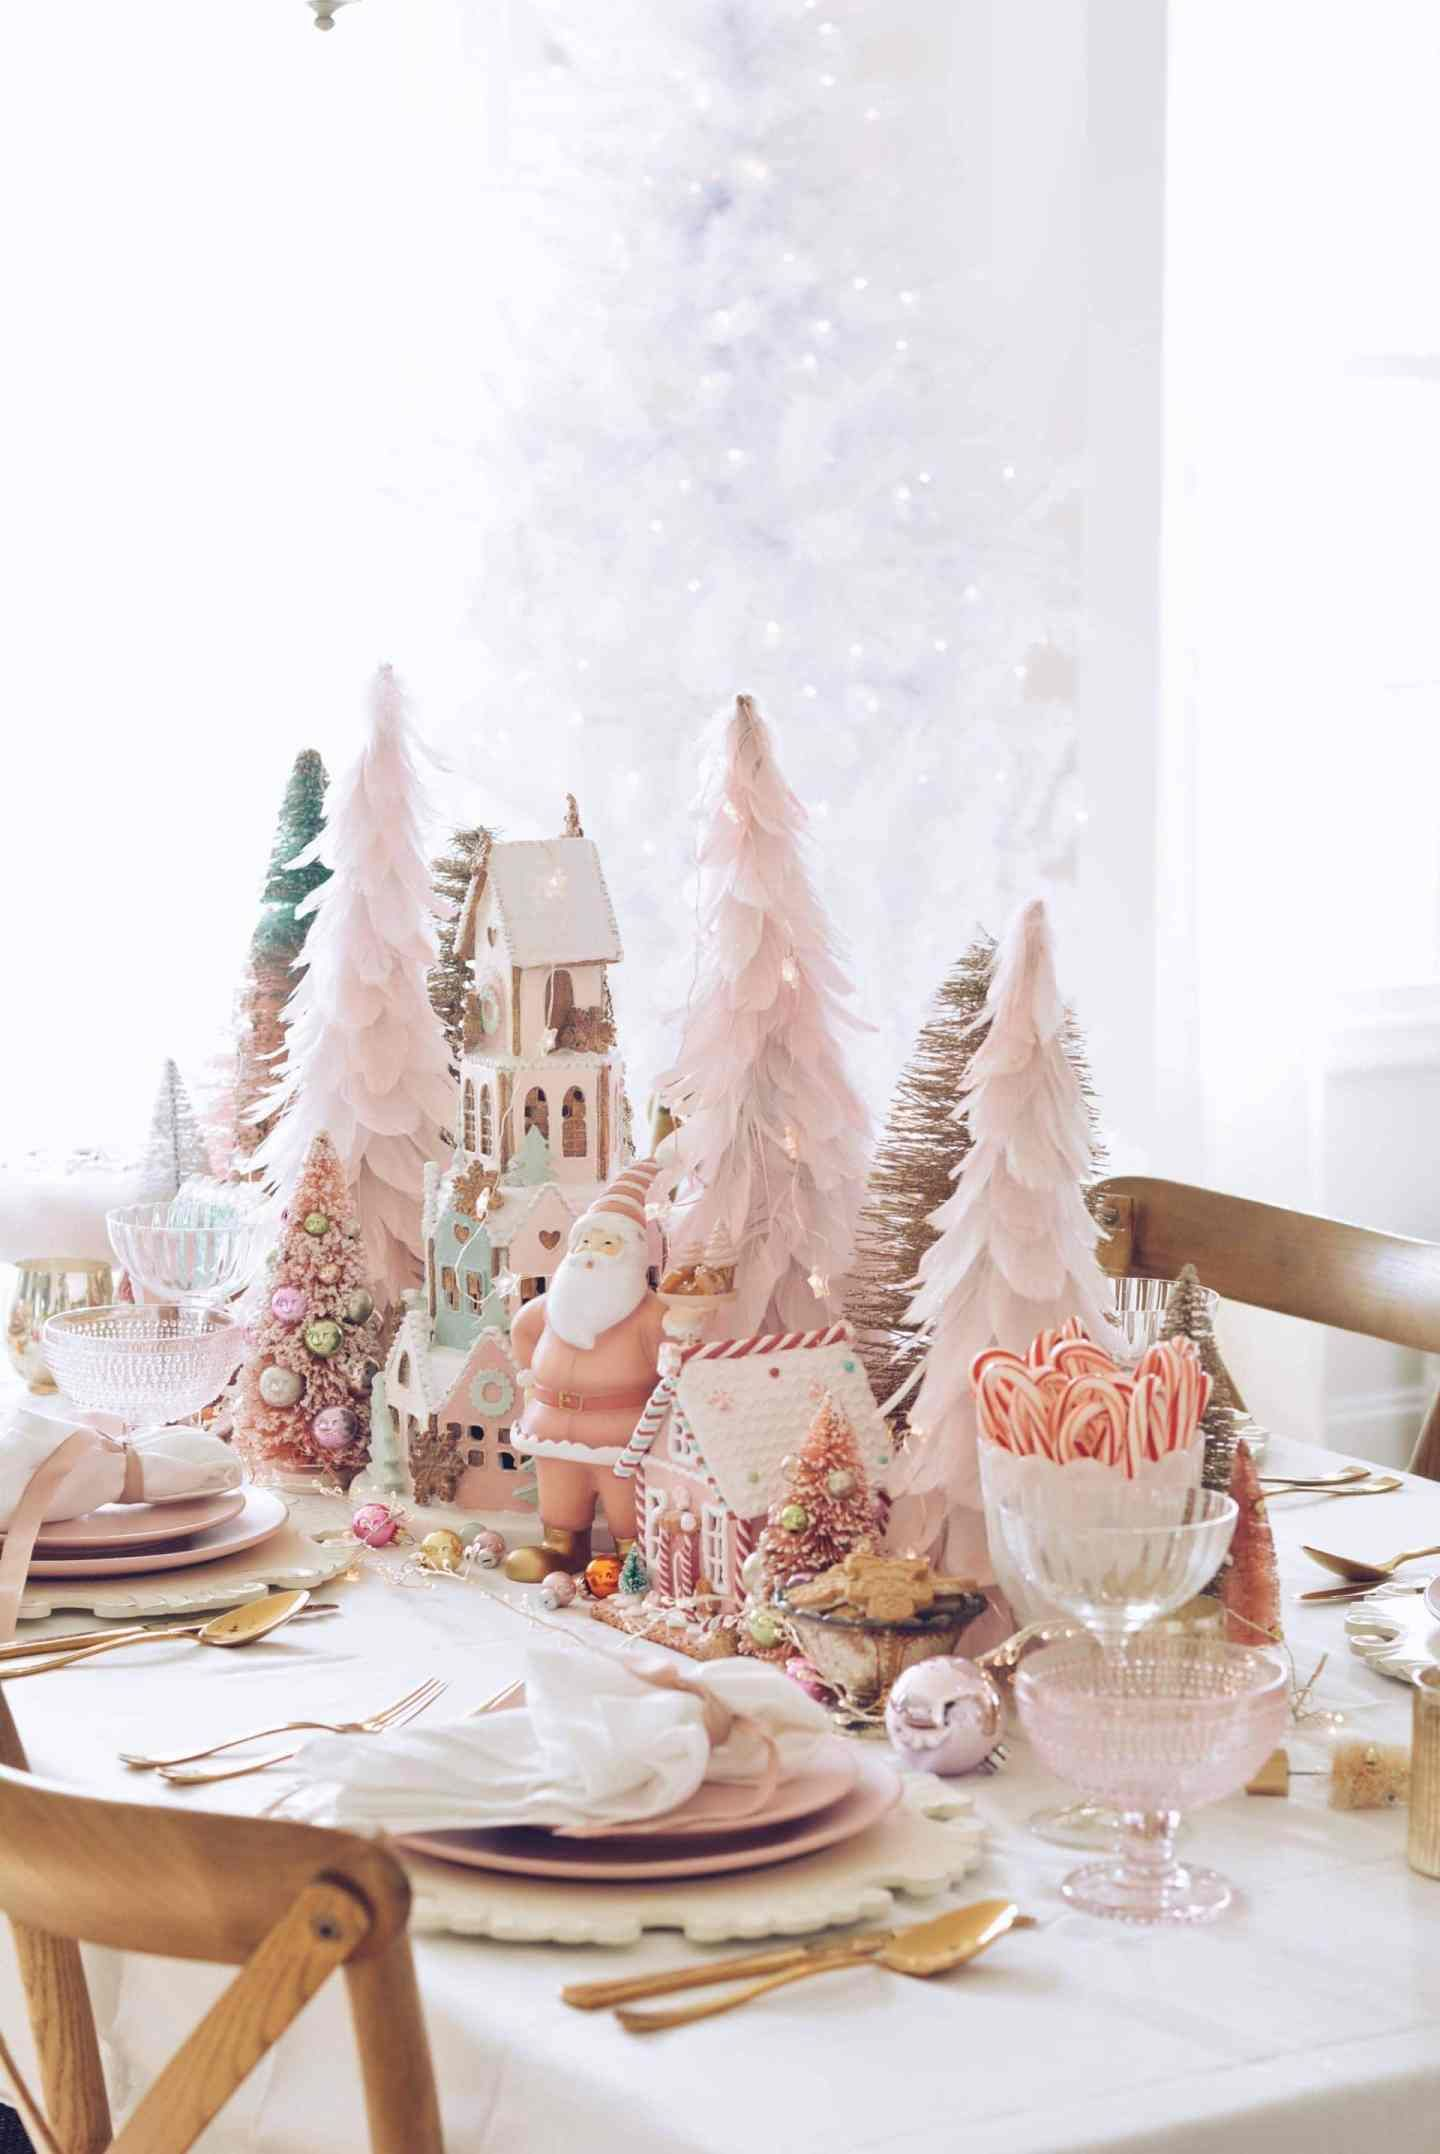 Pink Christmas Table Decorations A Pink Wonderland Dinner The Pink Dream In 2020 Christmas Table Settings Pink Christmas Table Christmas Table Decorations